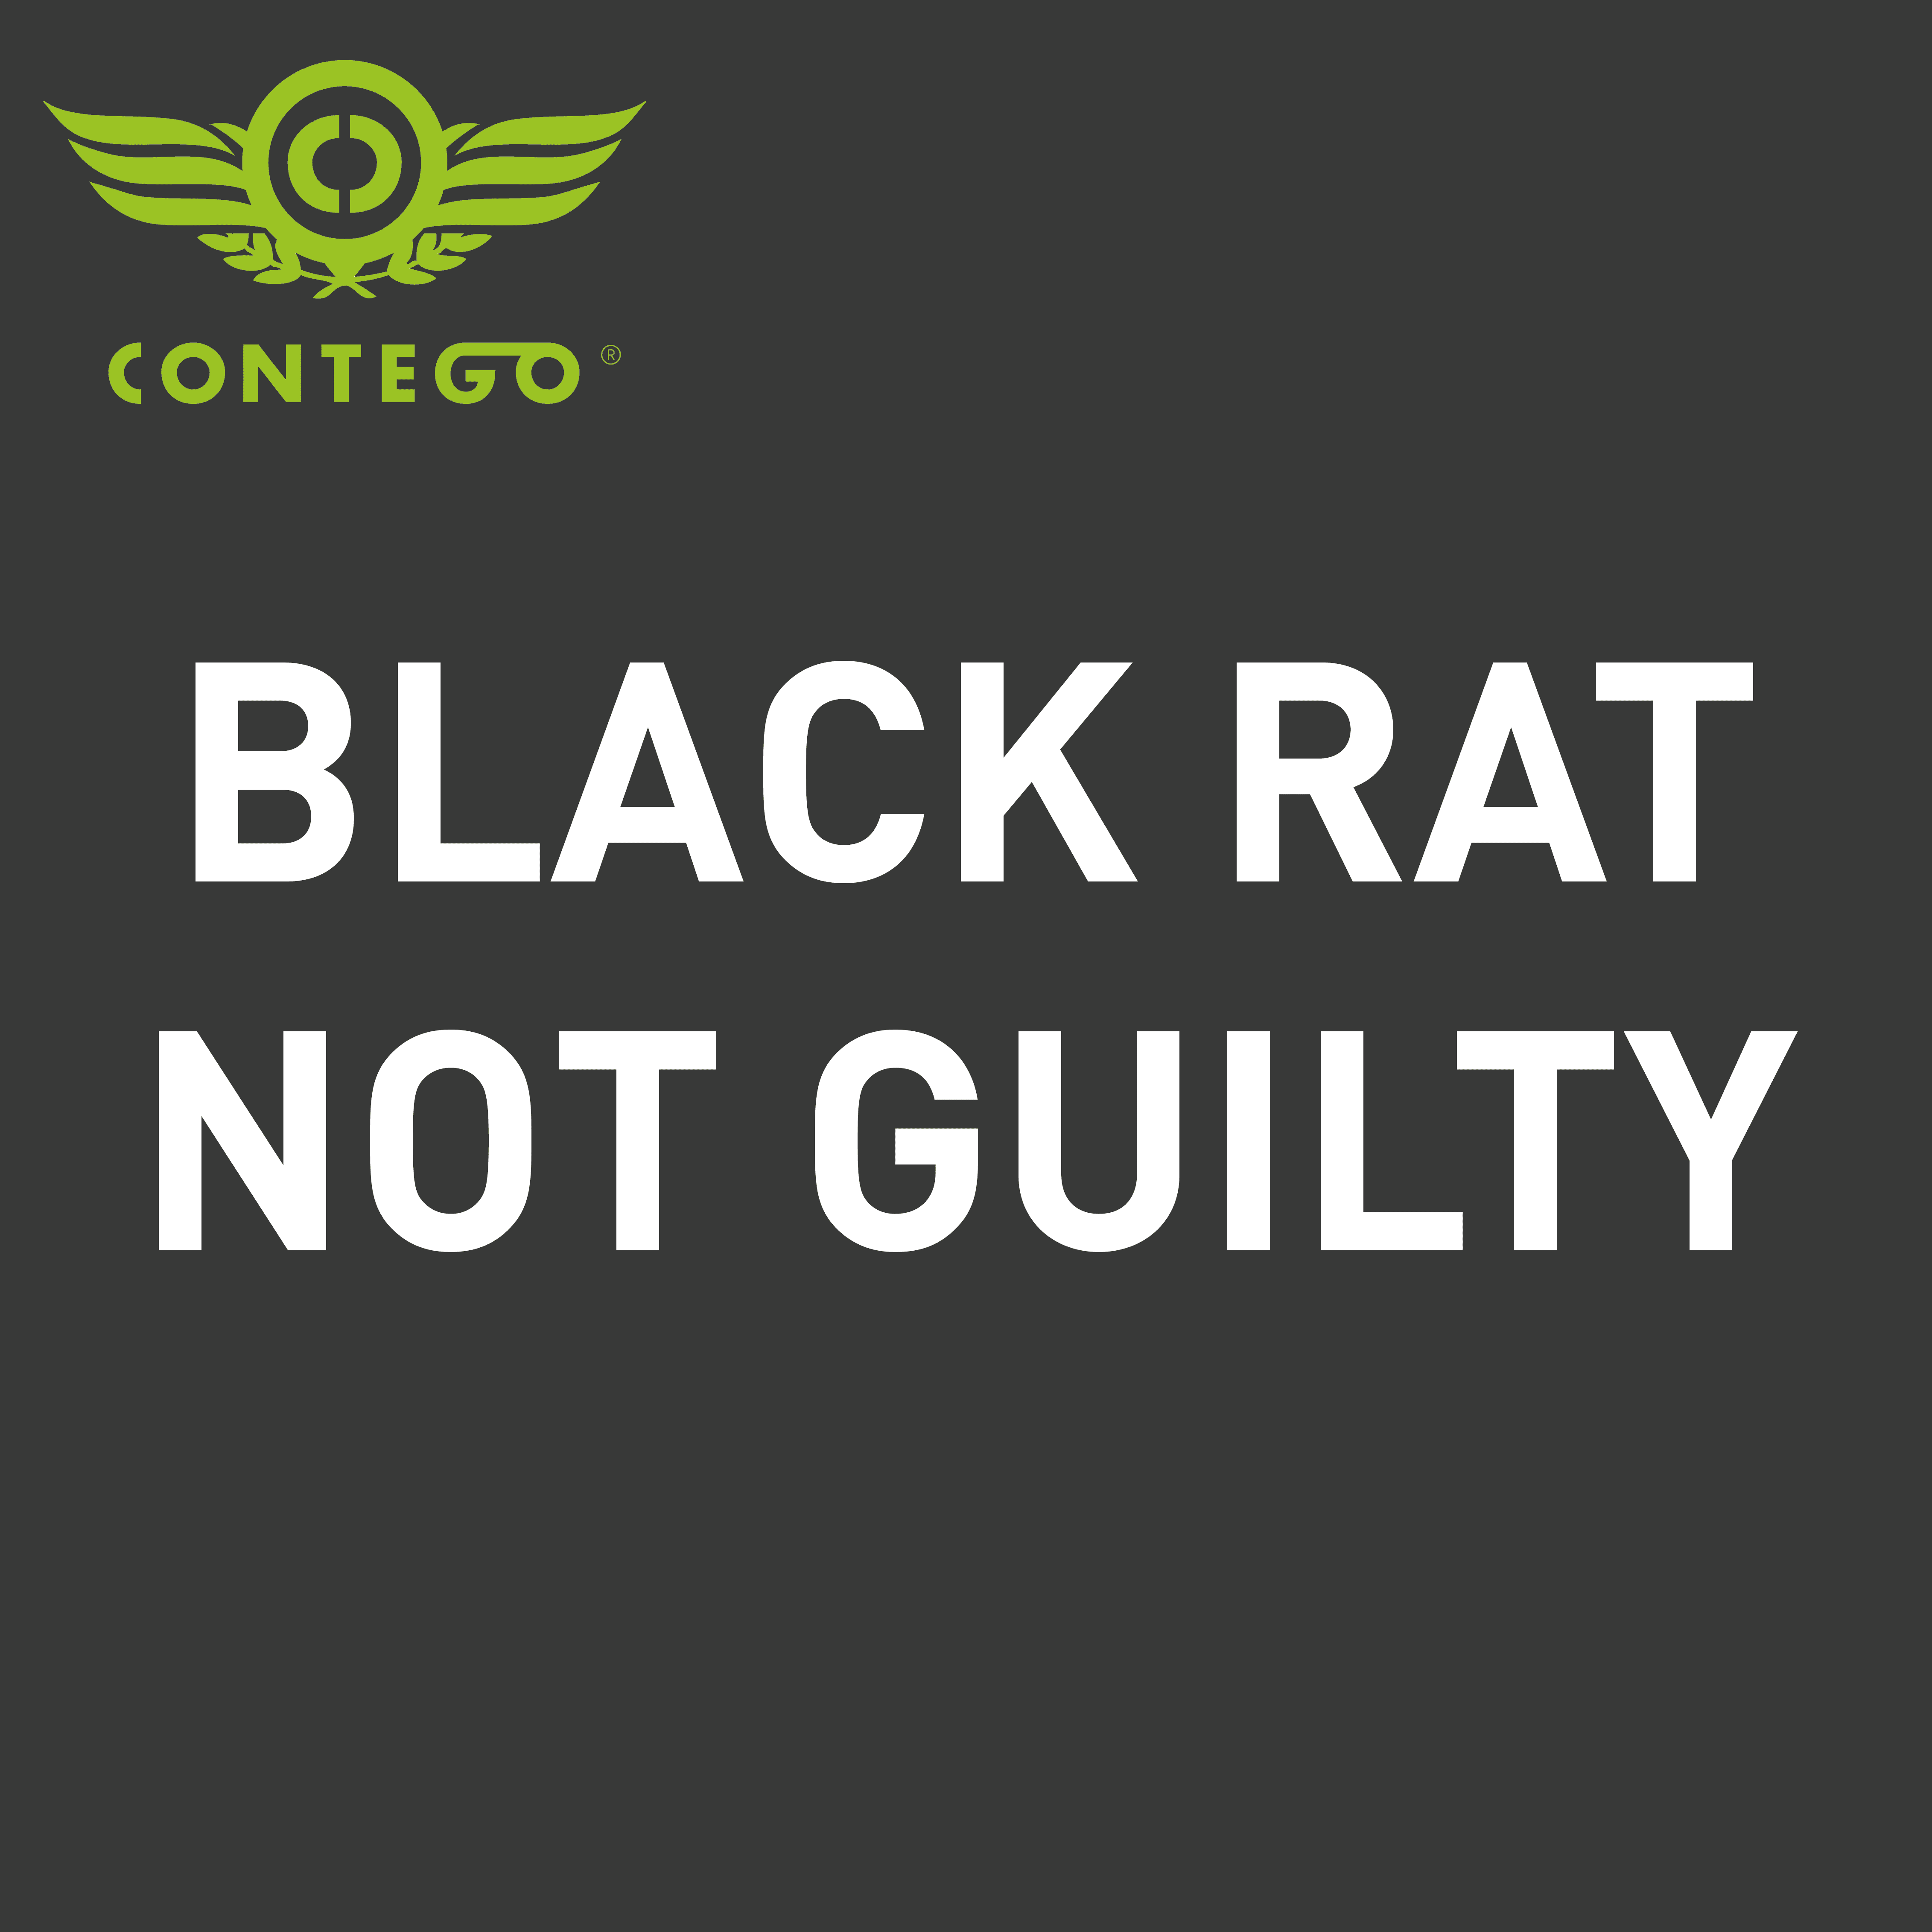 Black rat not guilty